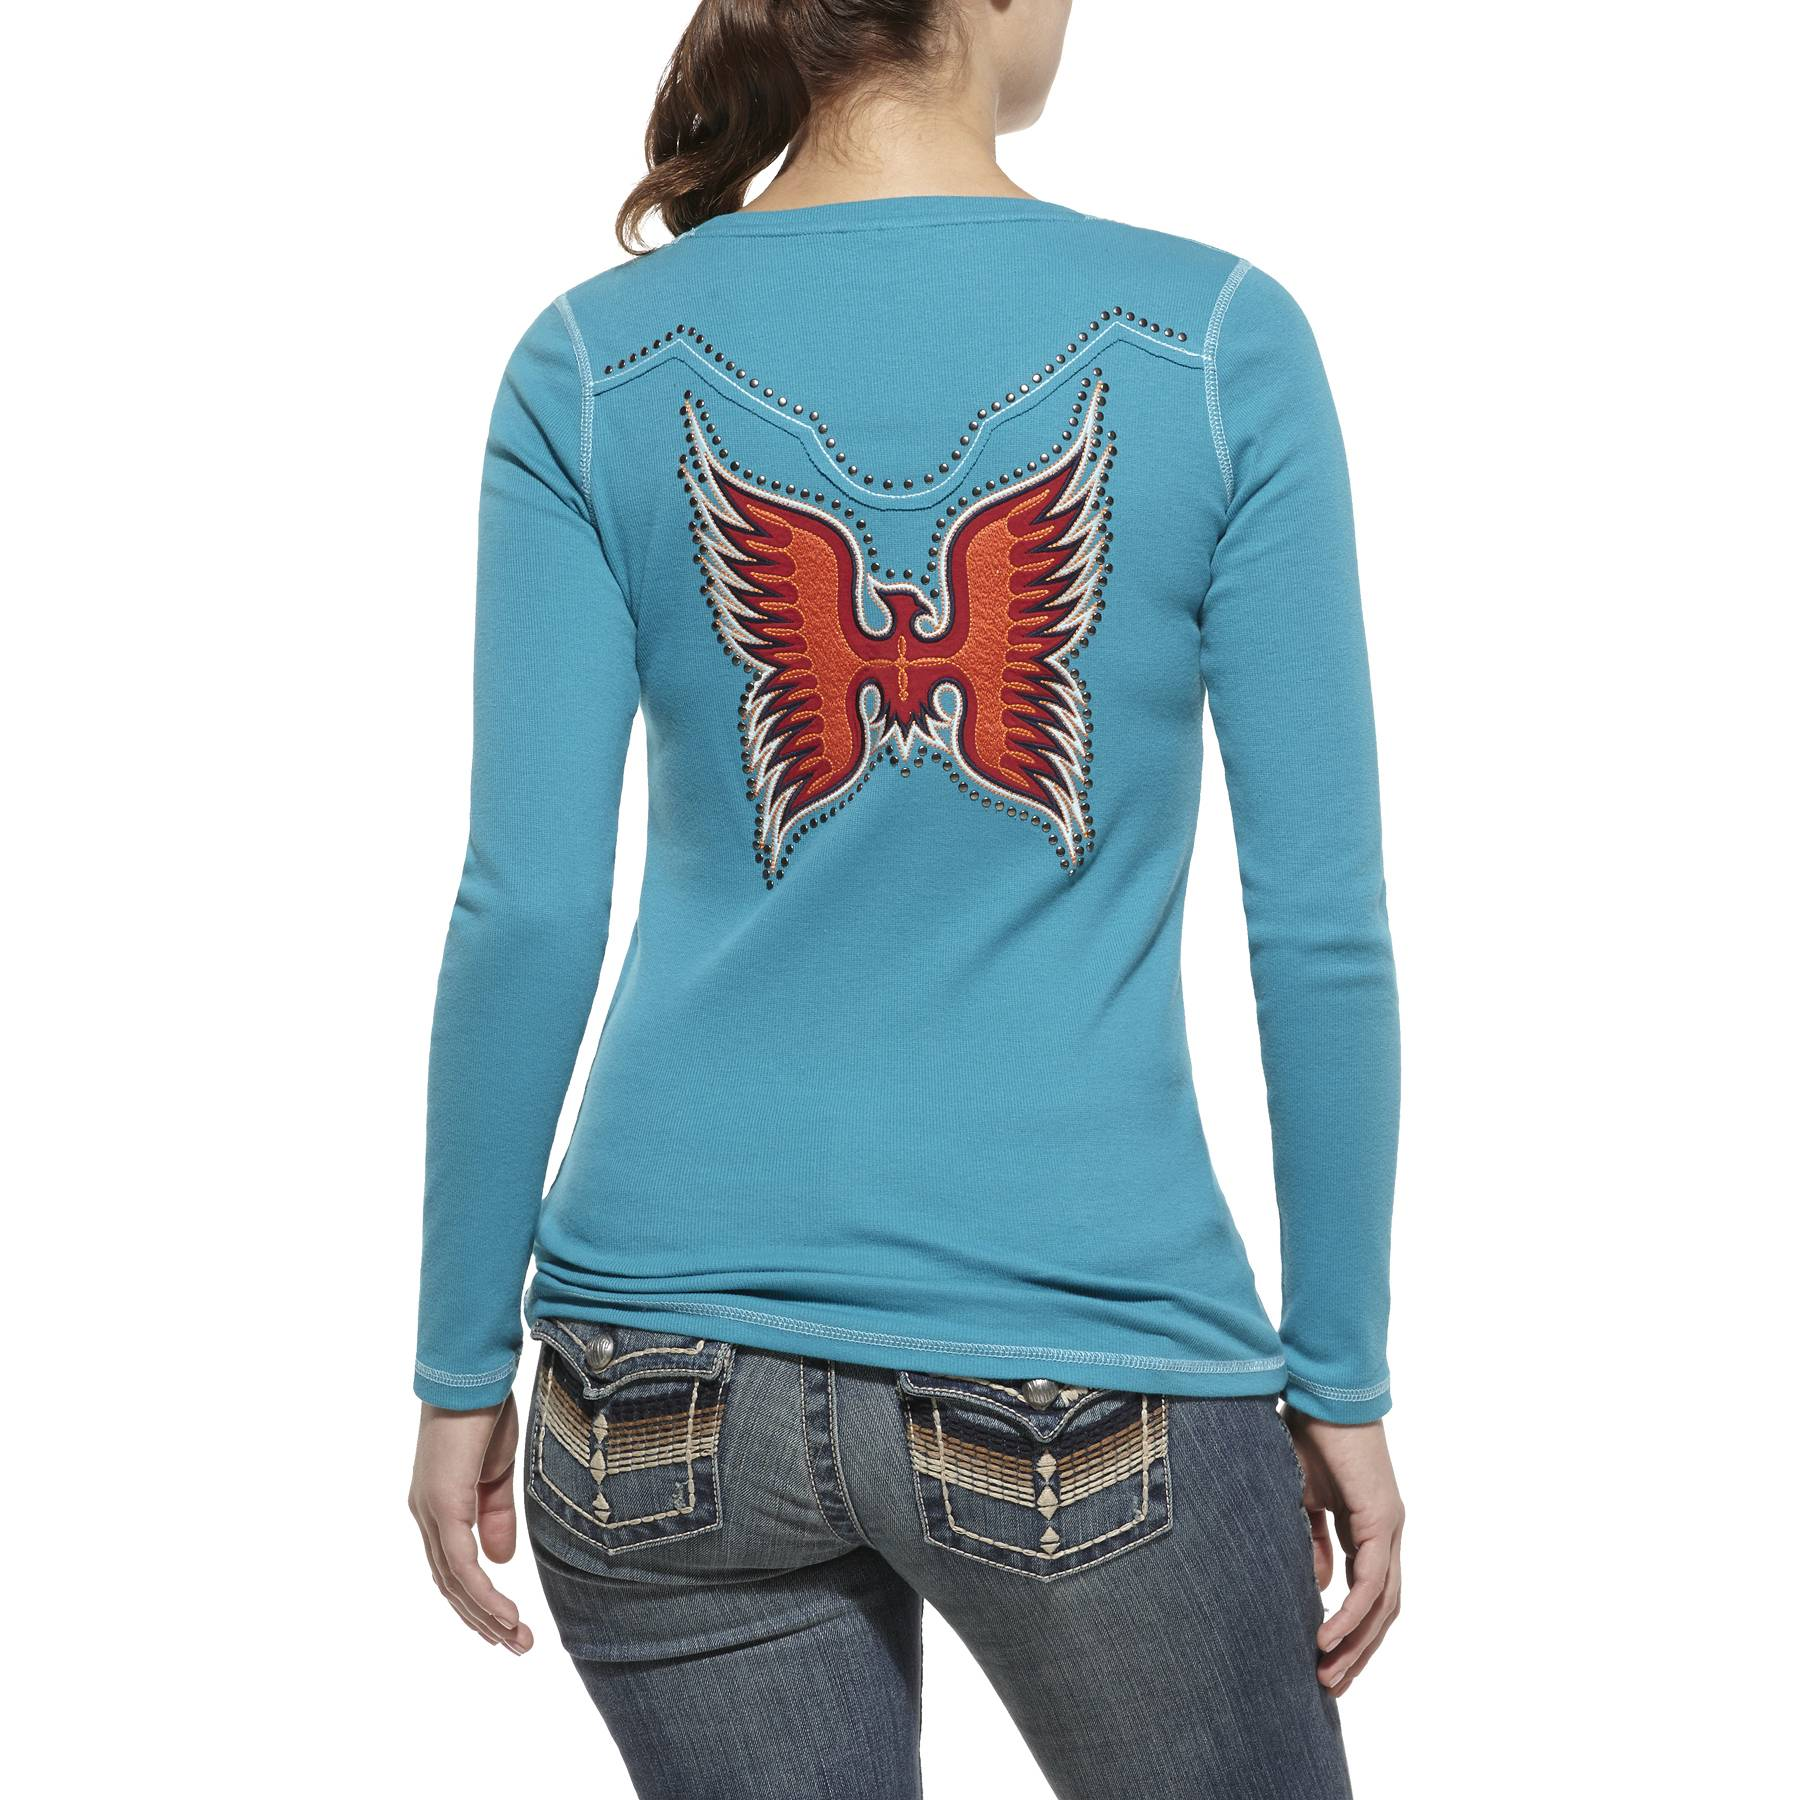 Ariat Women's Addison Top